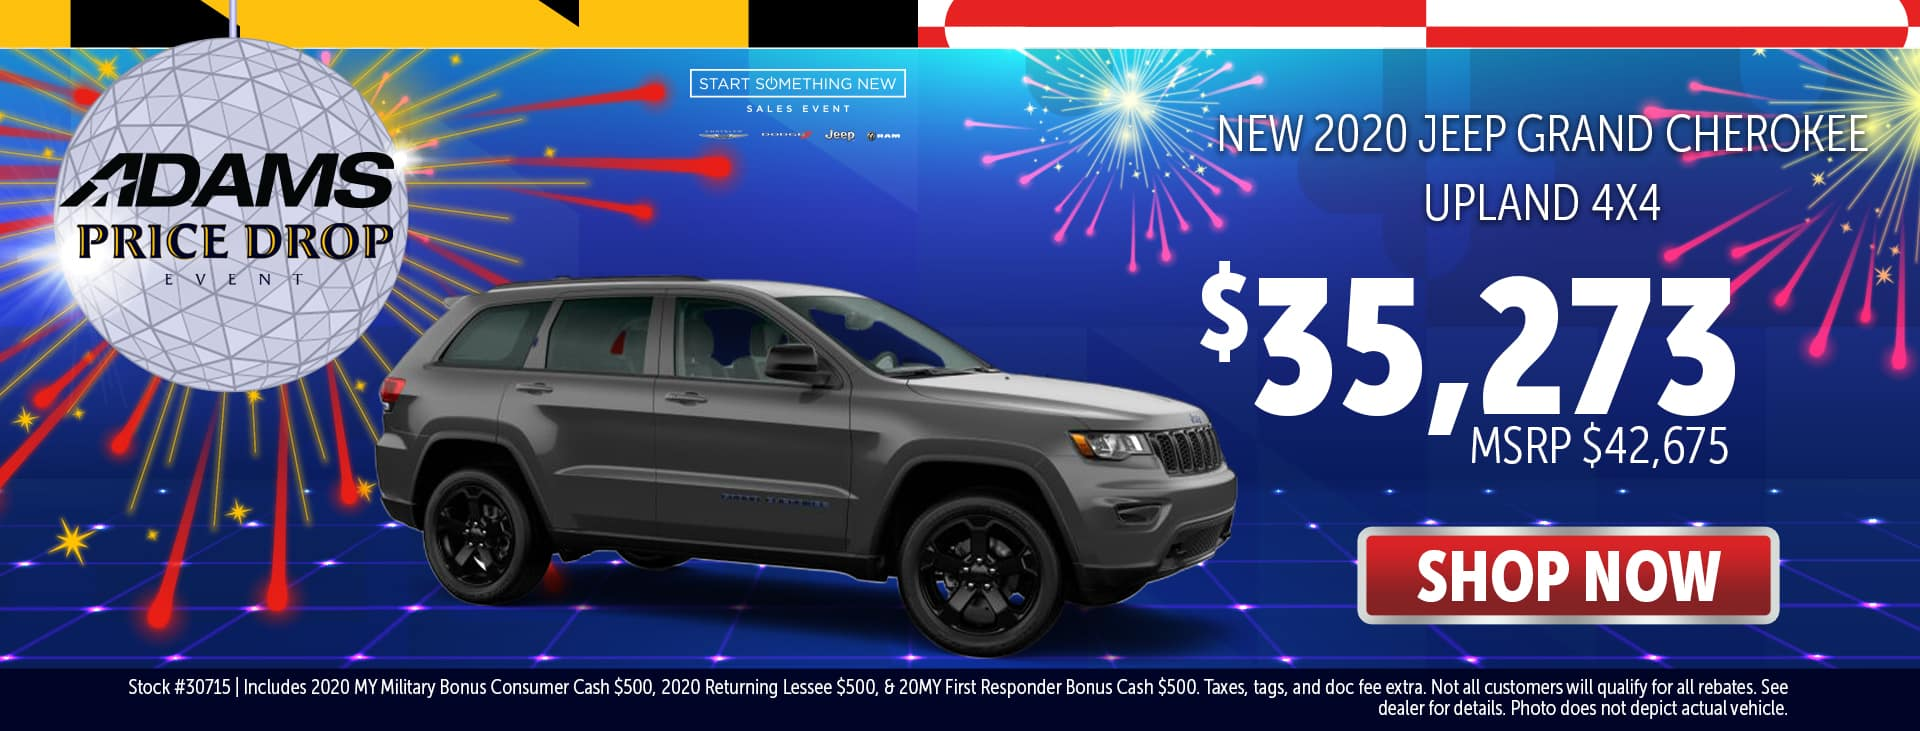 2020 Jeep Grand Cherokee for $35,273!